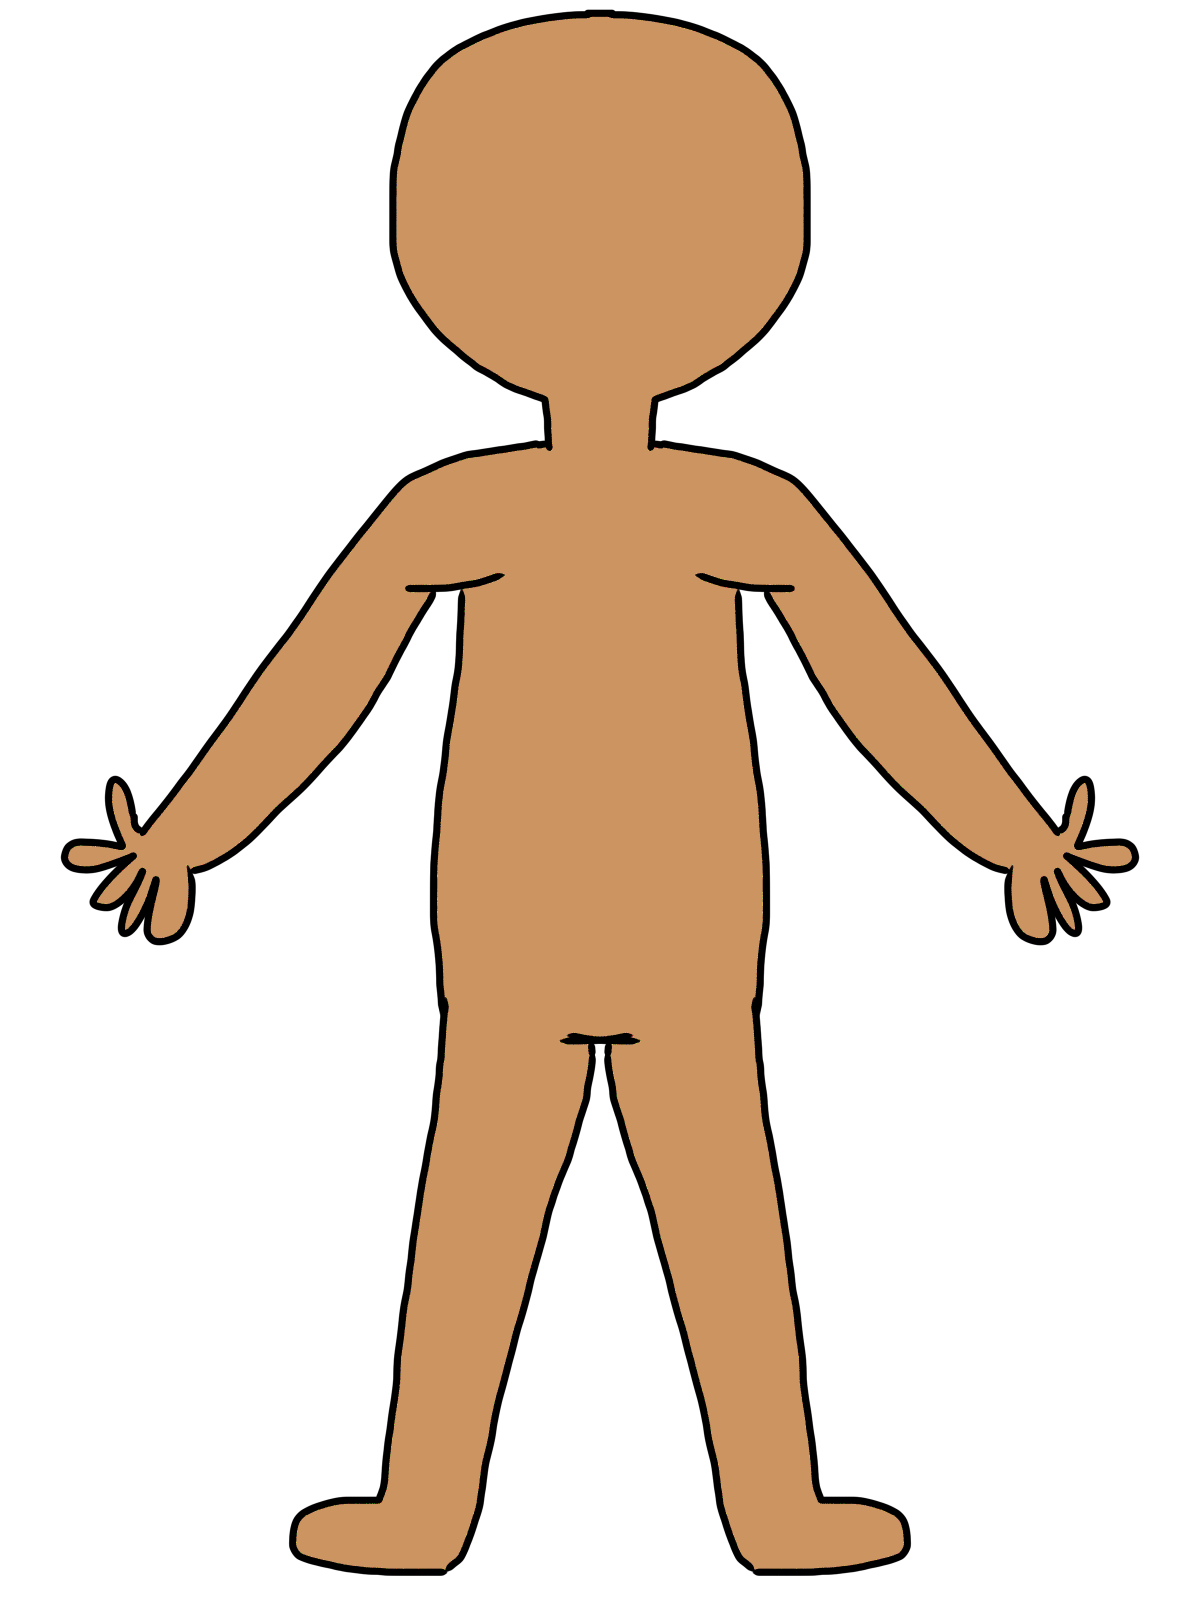 Human Organs Clipart At Getdrawings Free For Personal Use